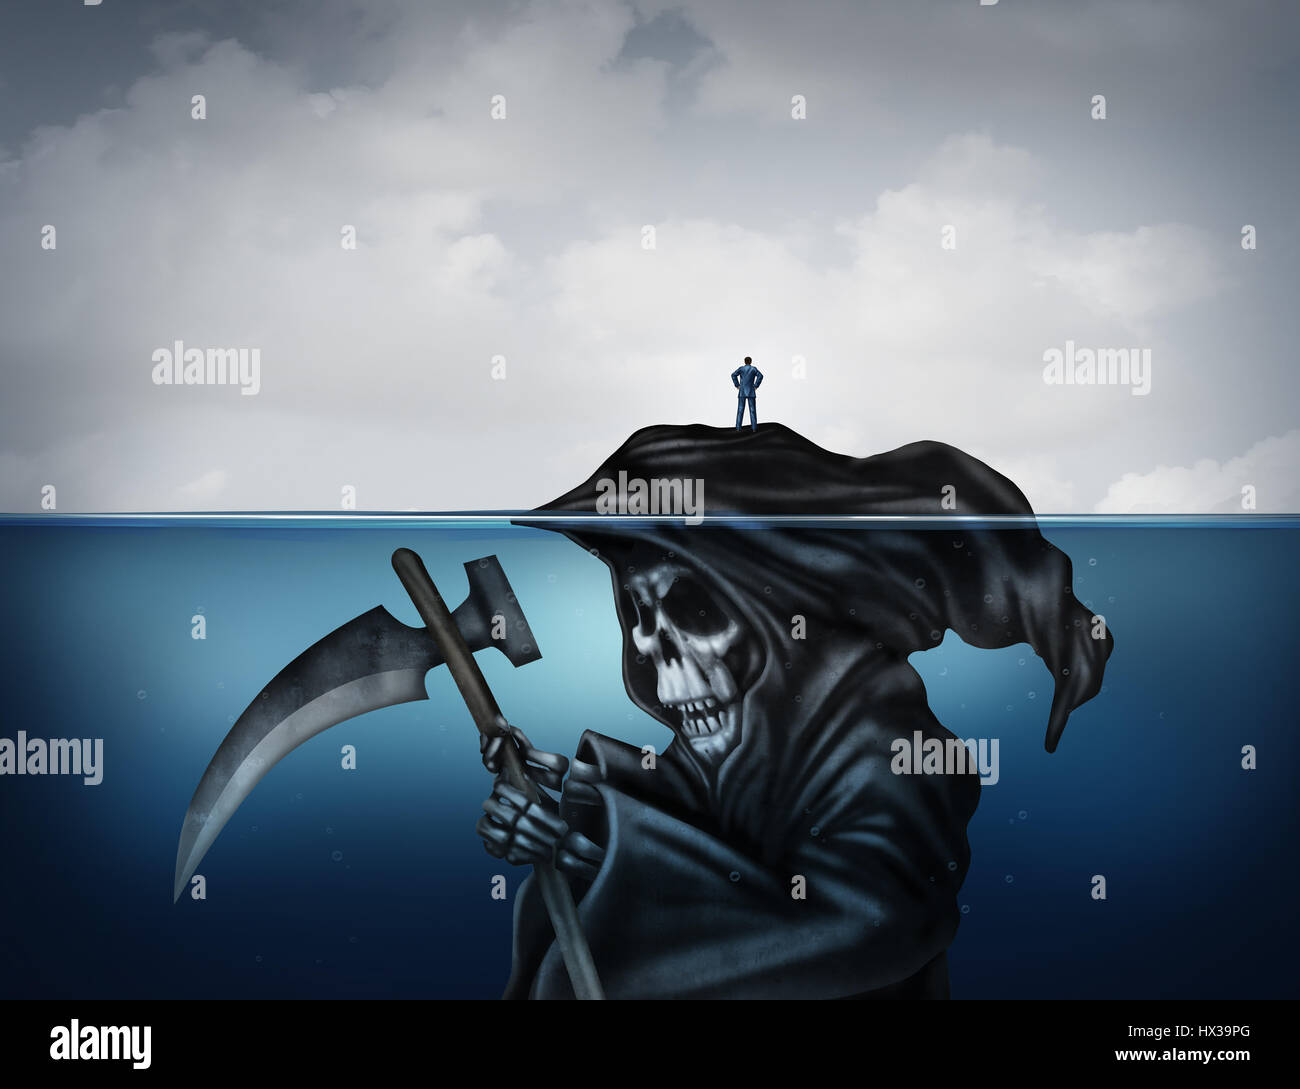 Death is looming concept or health risk and unknowingly have a false sense of security as a symbol in a 3D illustration - Stock Image